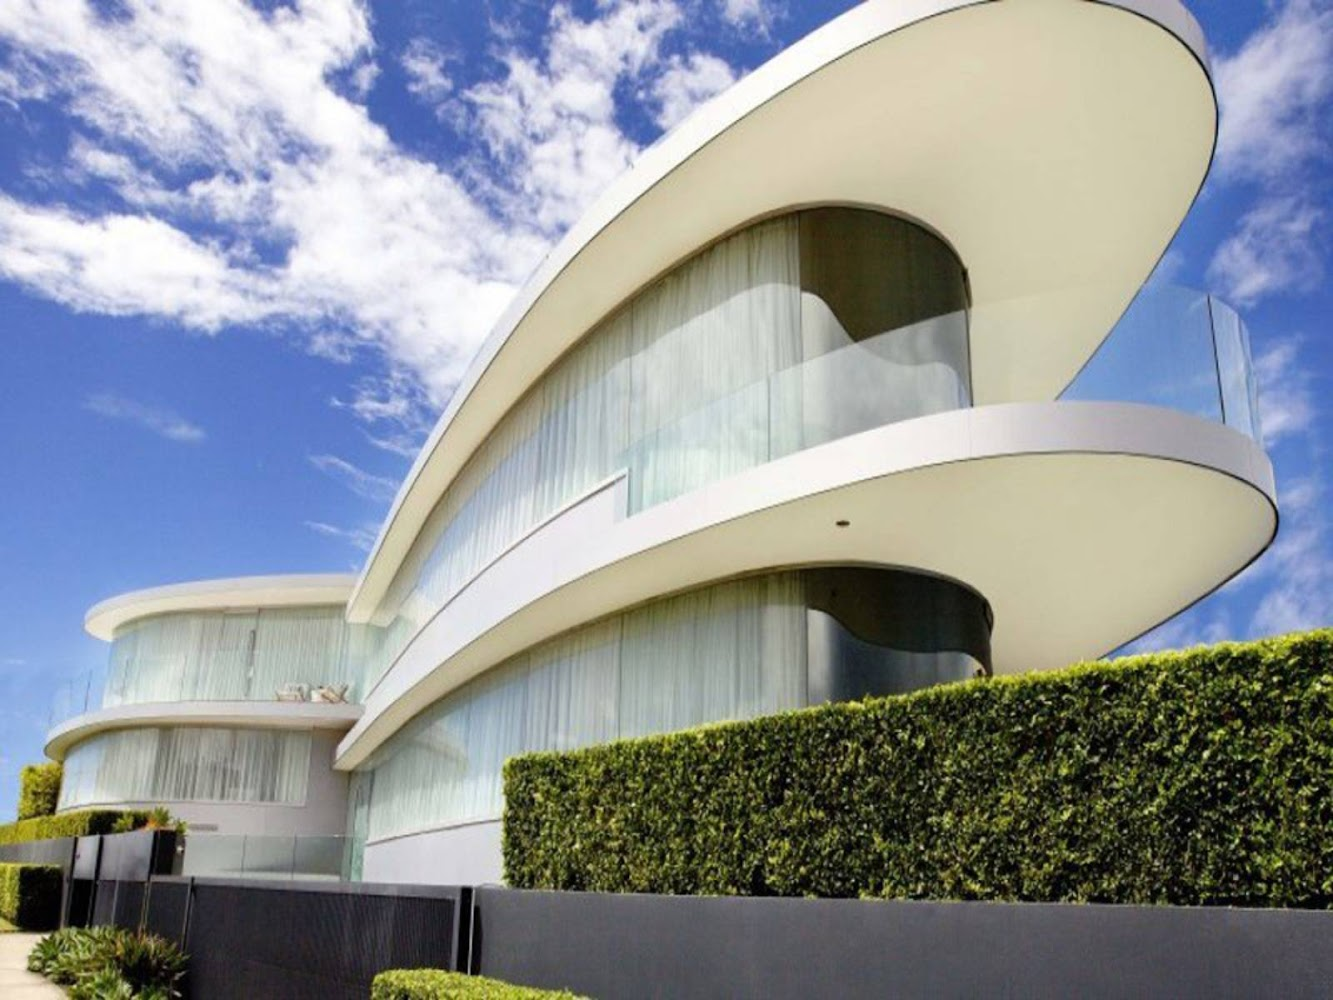 Dover Heights Nuovo Galles del Sud 2030, Australia: Butterfly House by Lippmann Partnership